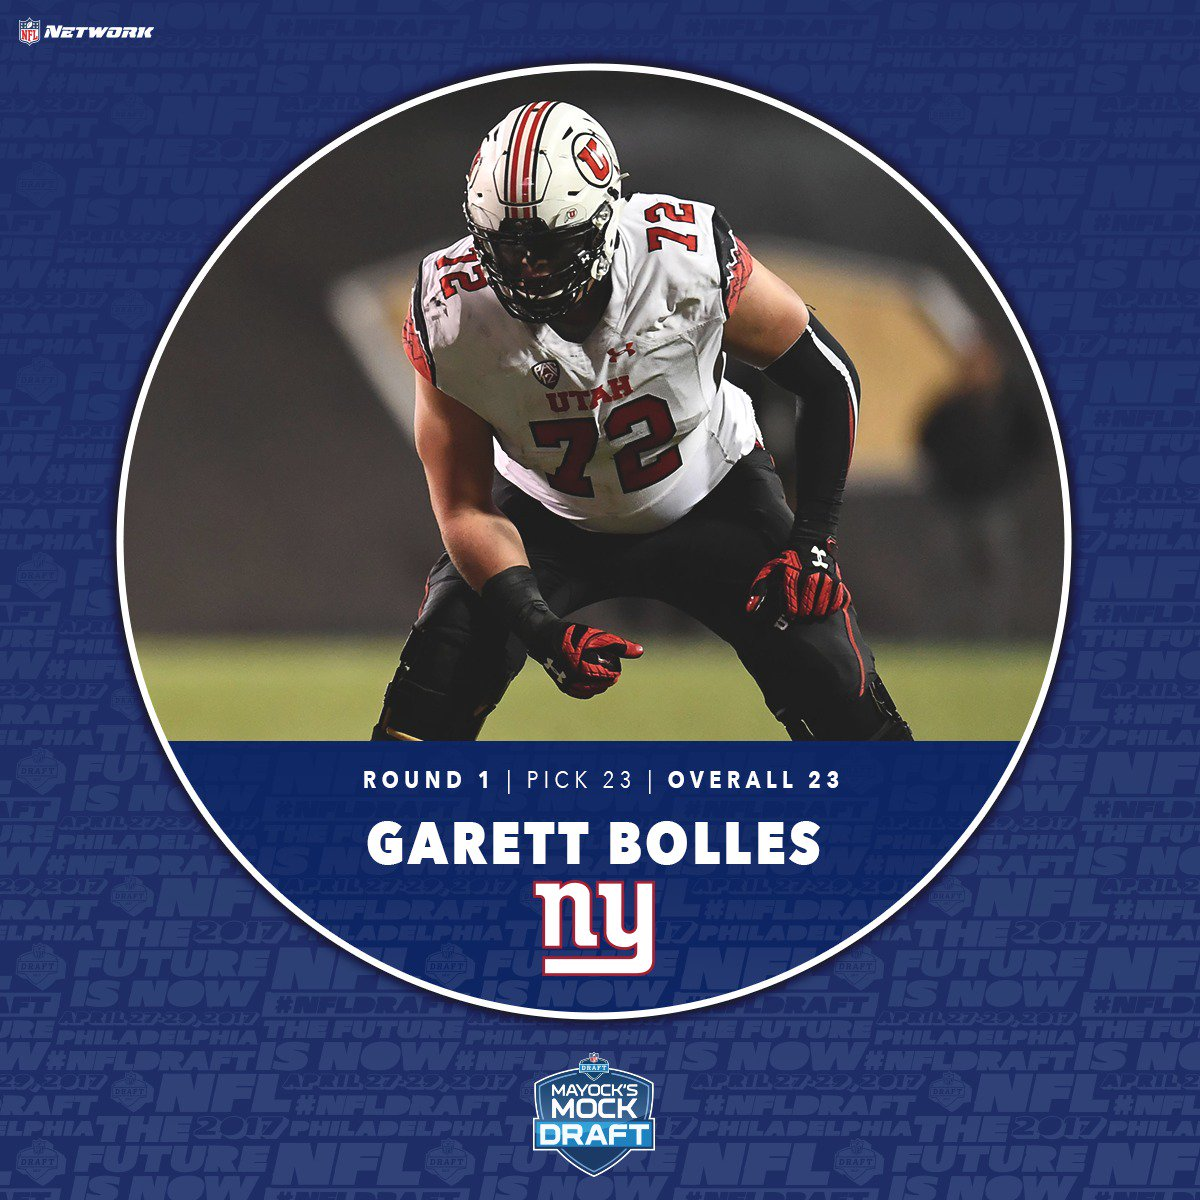 T Garett Bolles from Utah is going across the country! (23rd overall)...